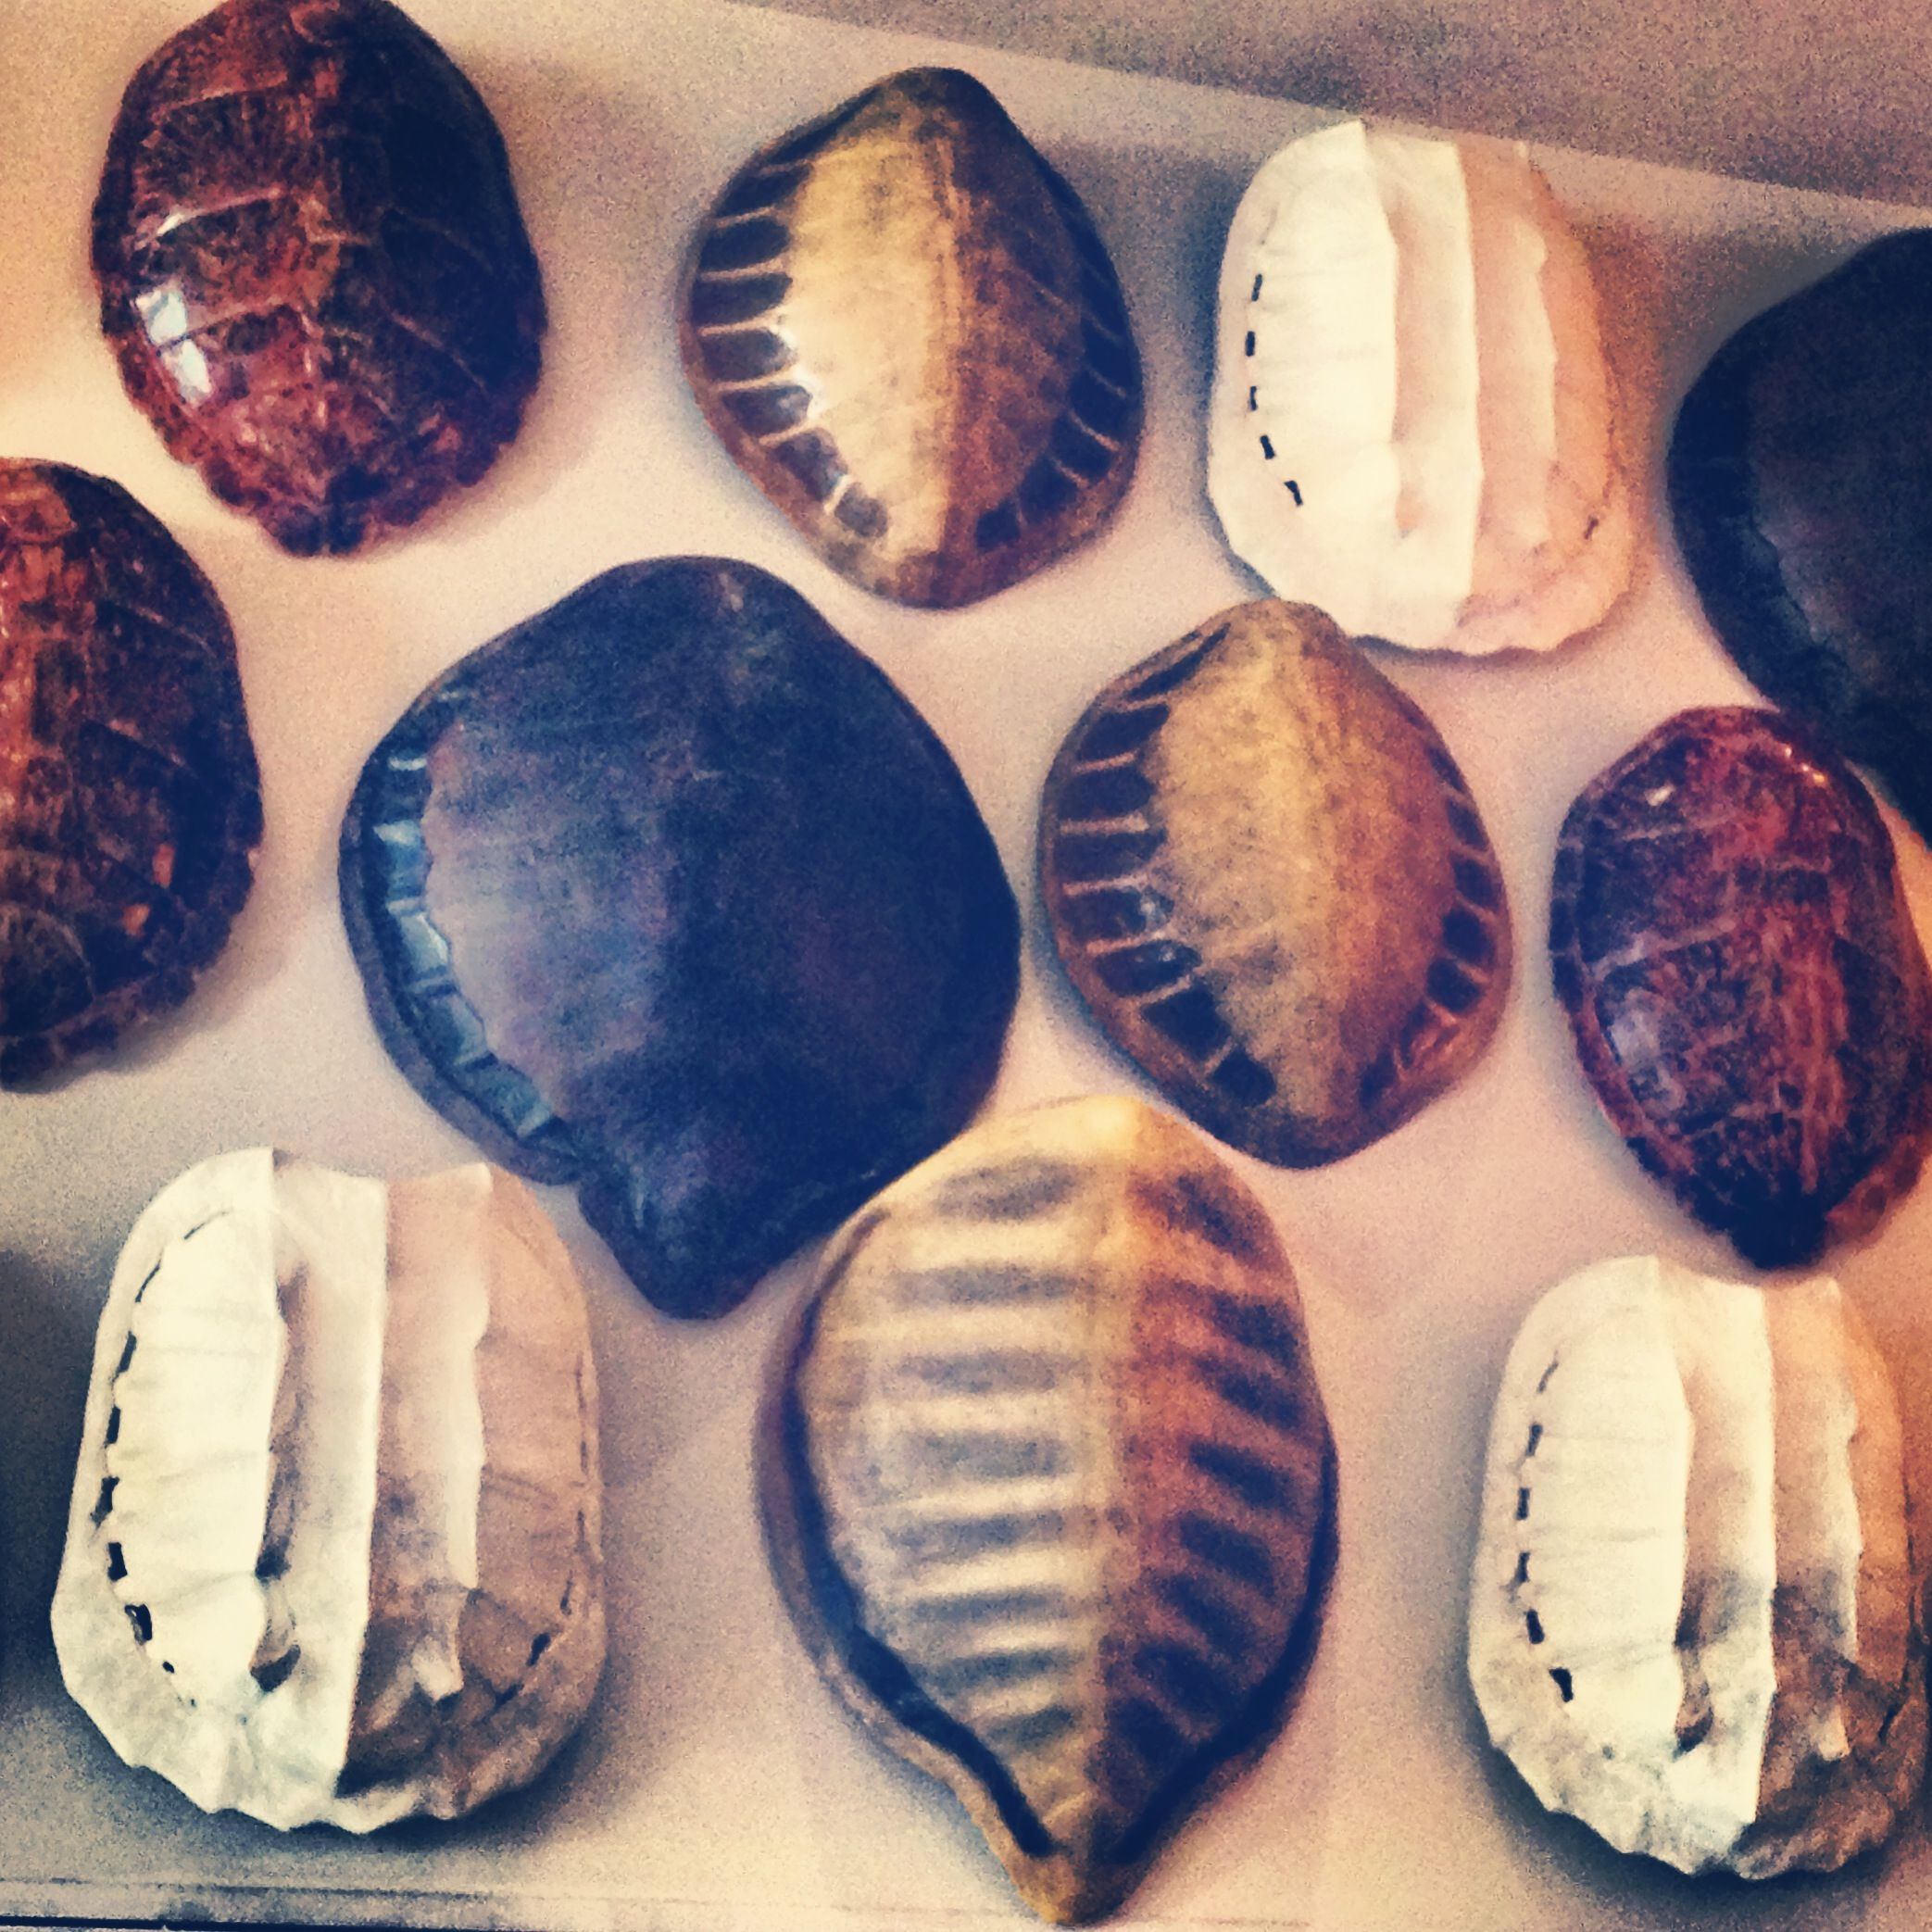 Turtle shell wall decor | Home | Wall decor, World of ...